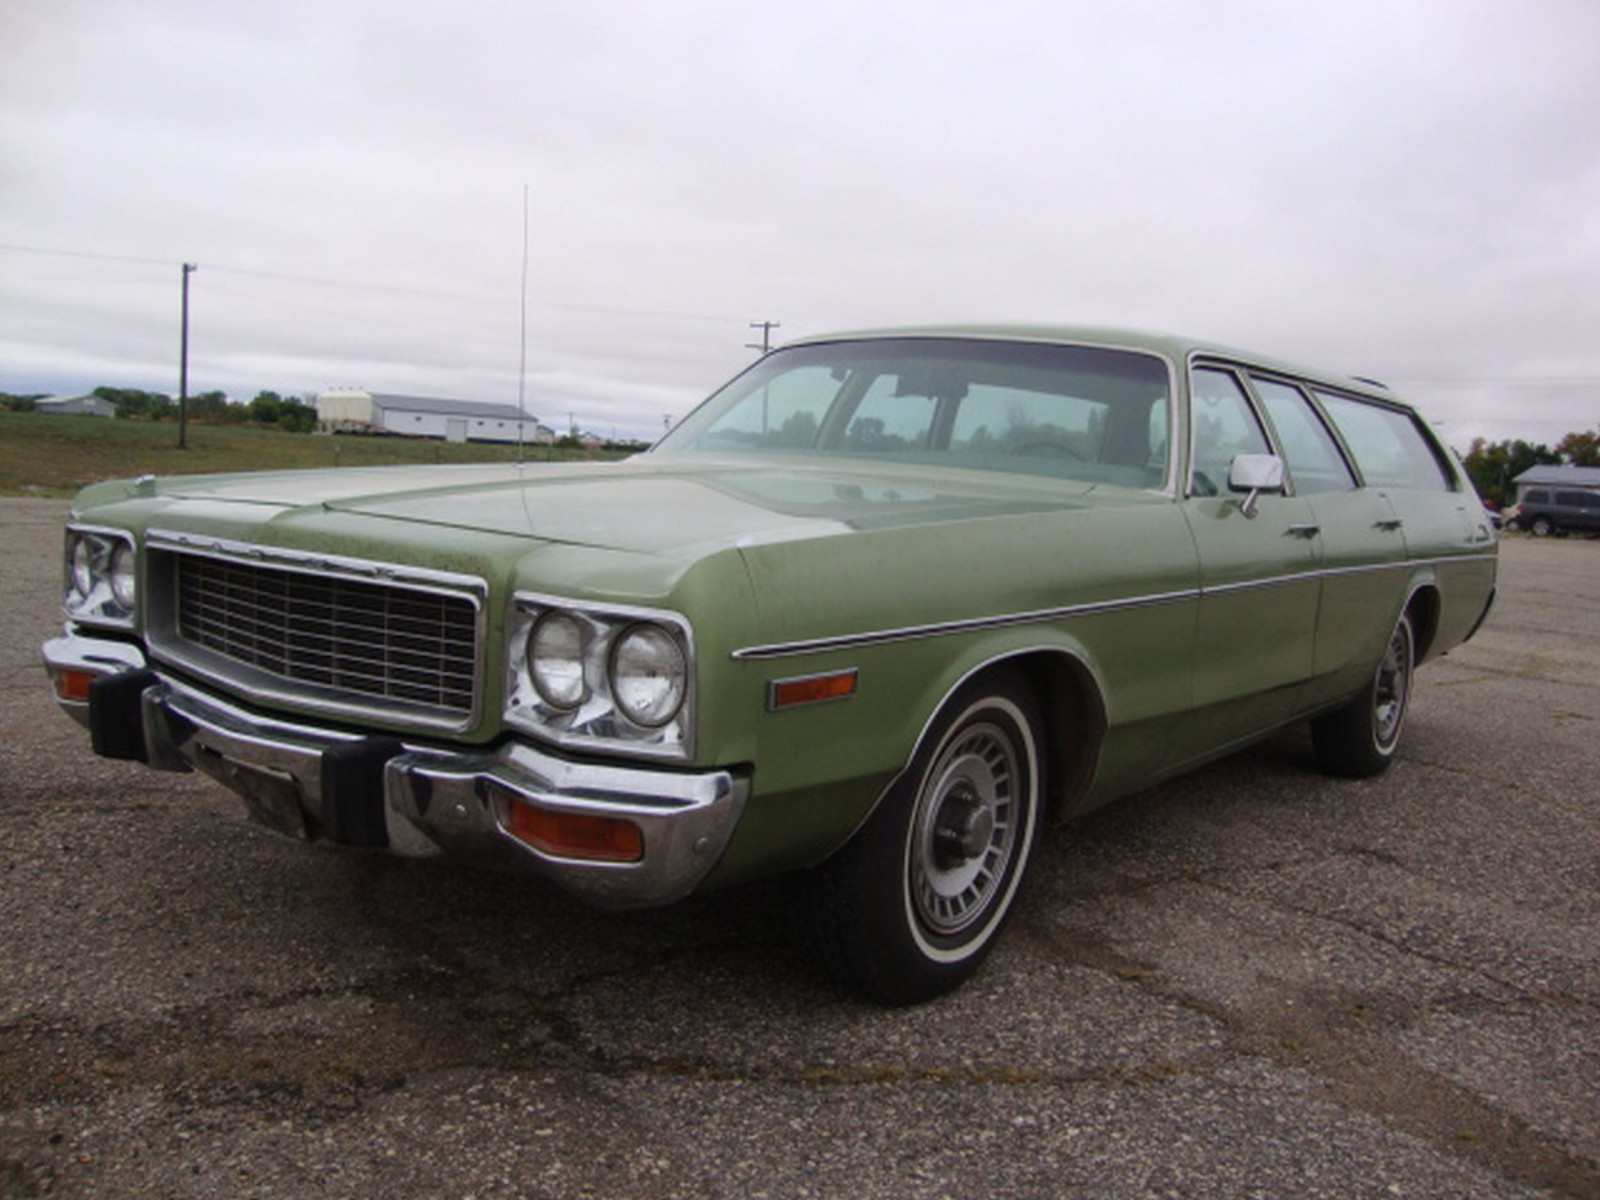 1973 Dodge Polara Custom Wagon - Image 1